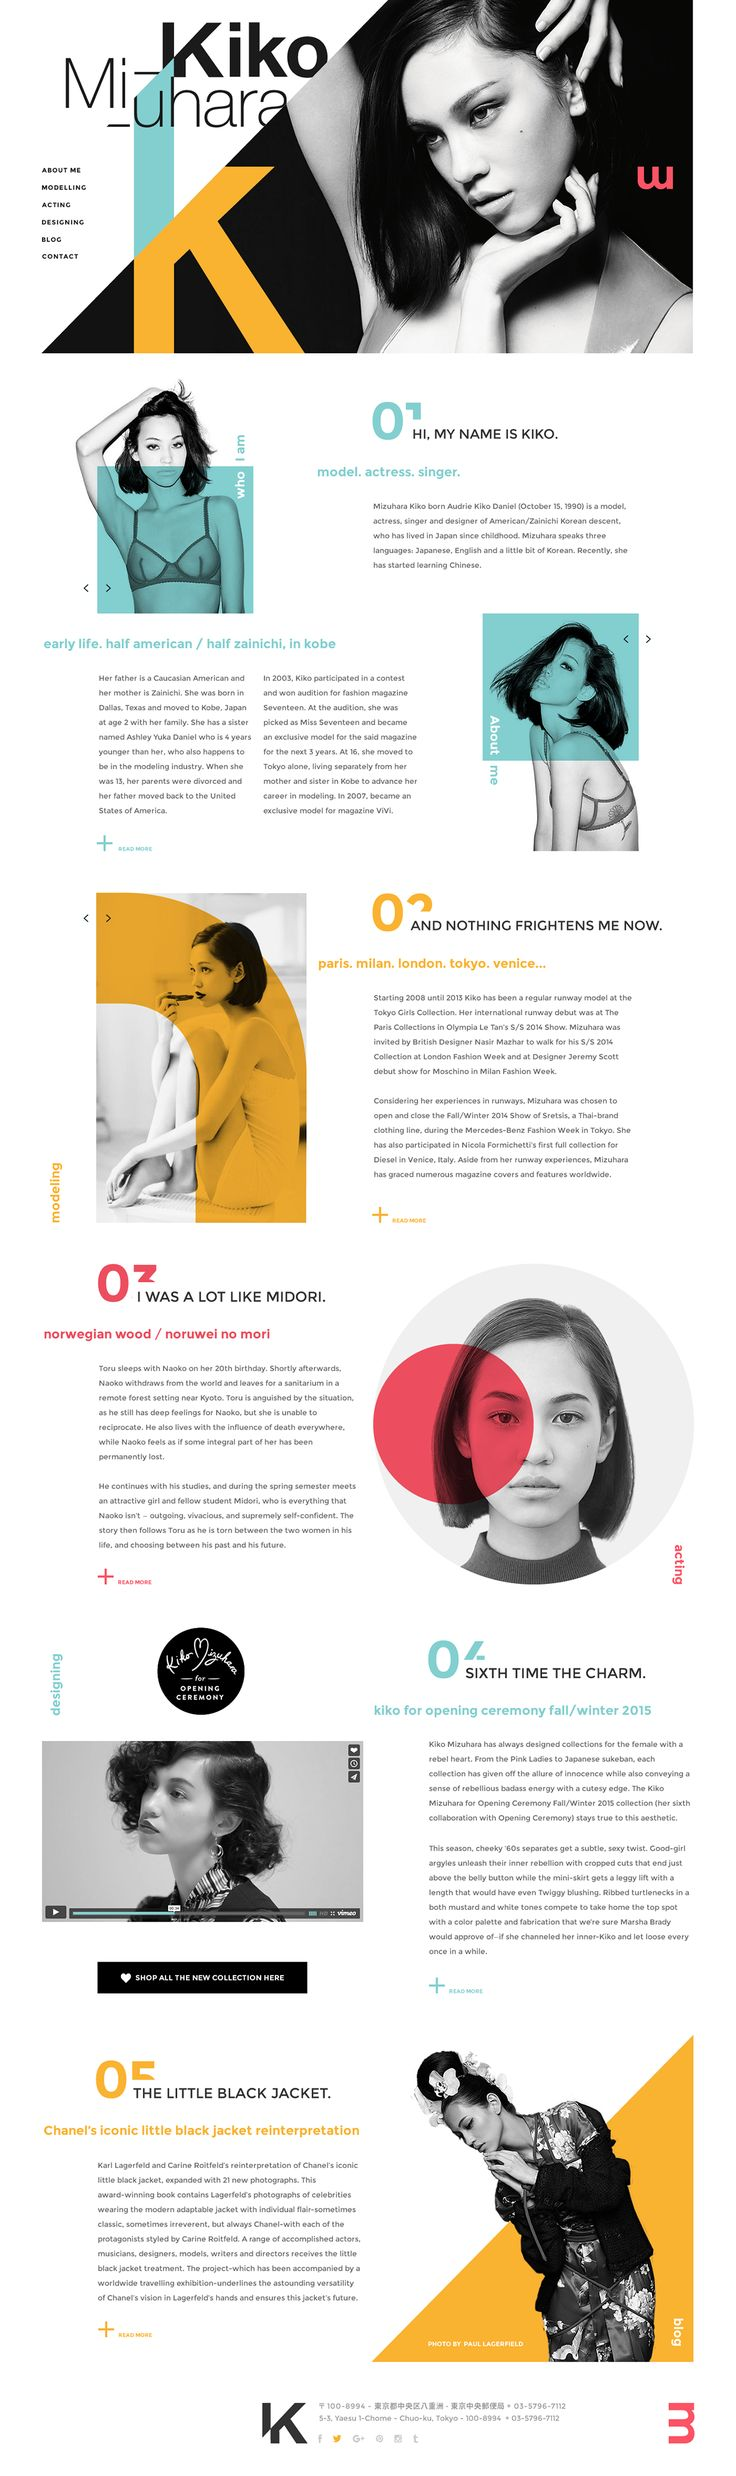 Kiko Mizuhara on Behance